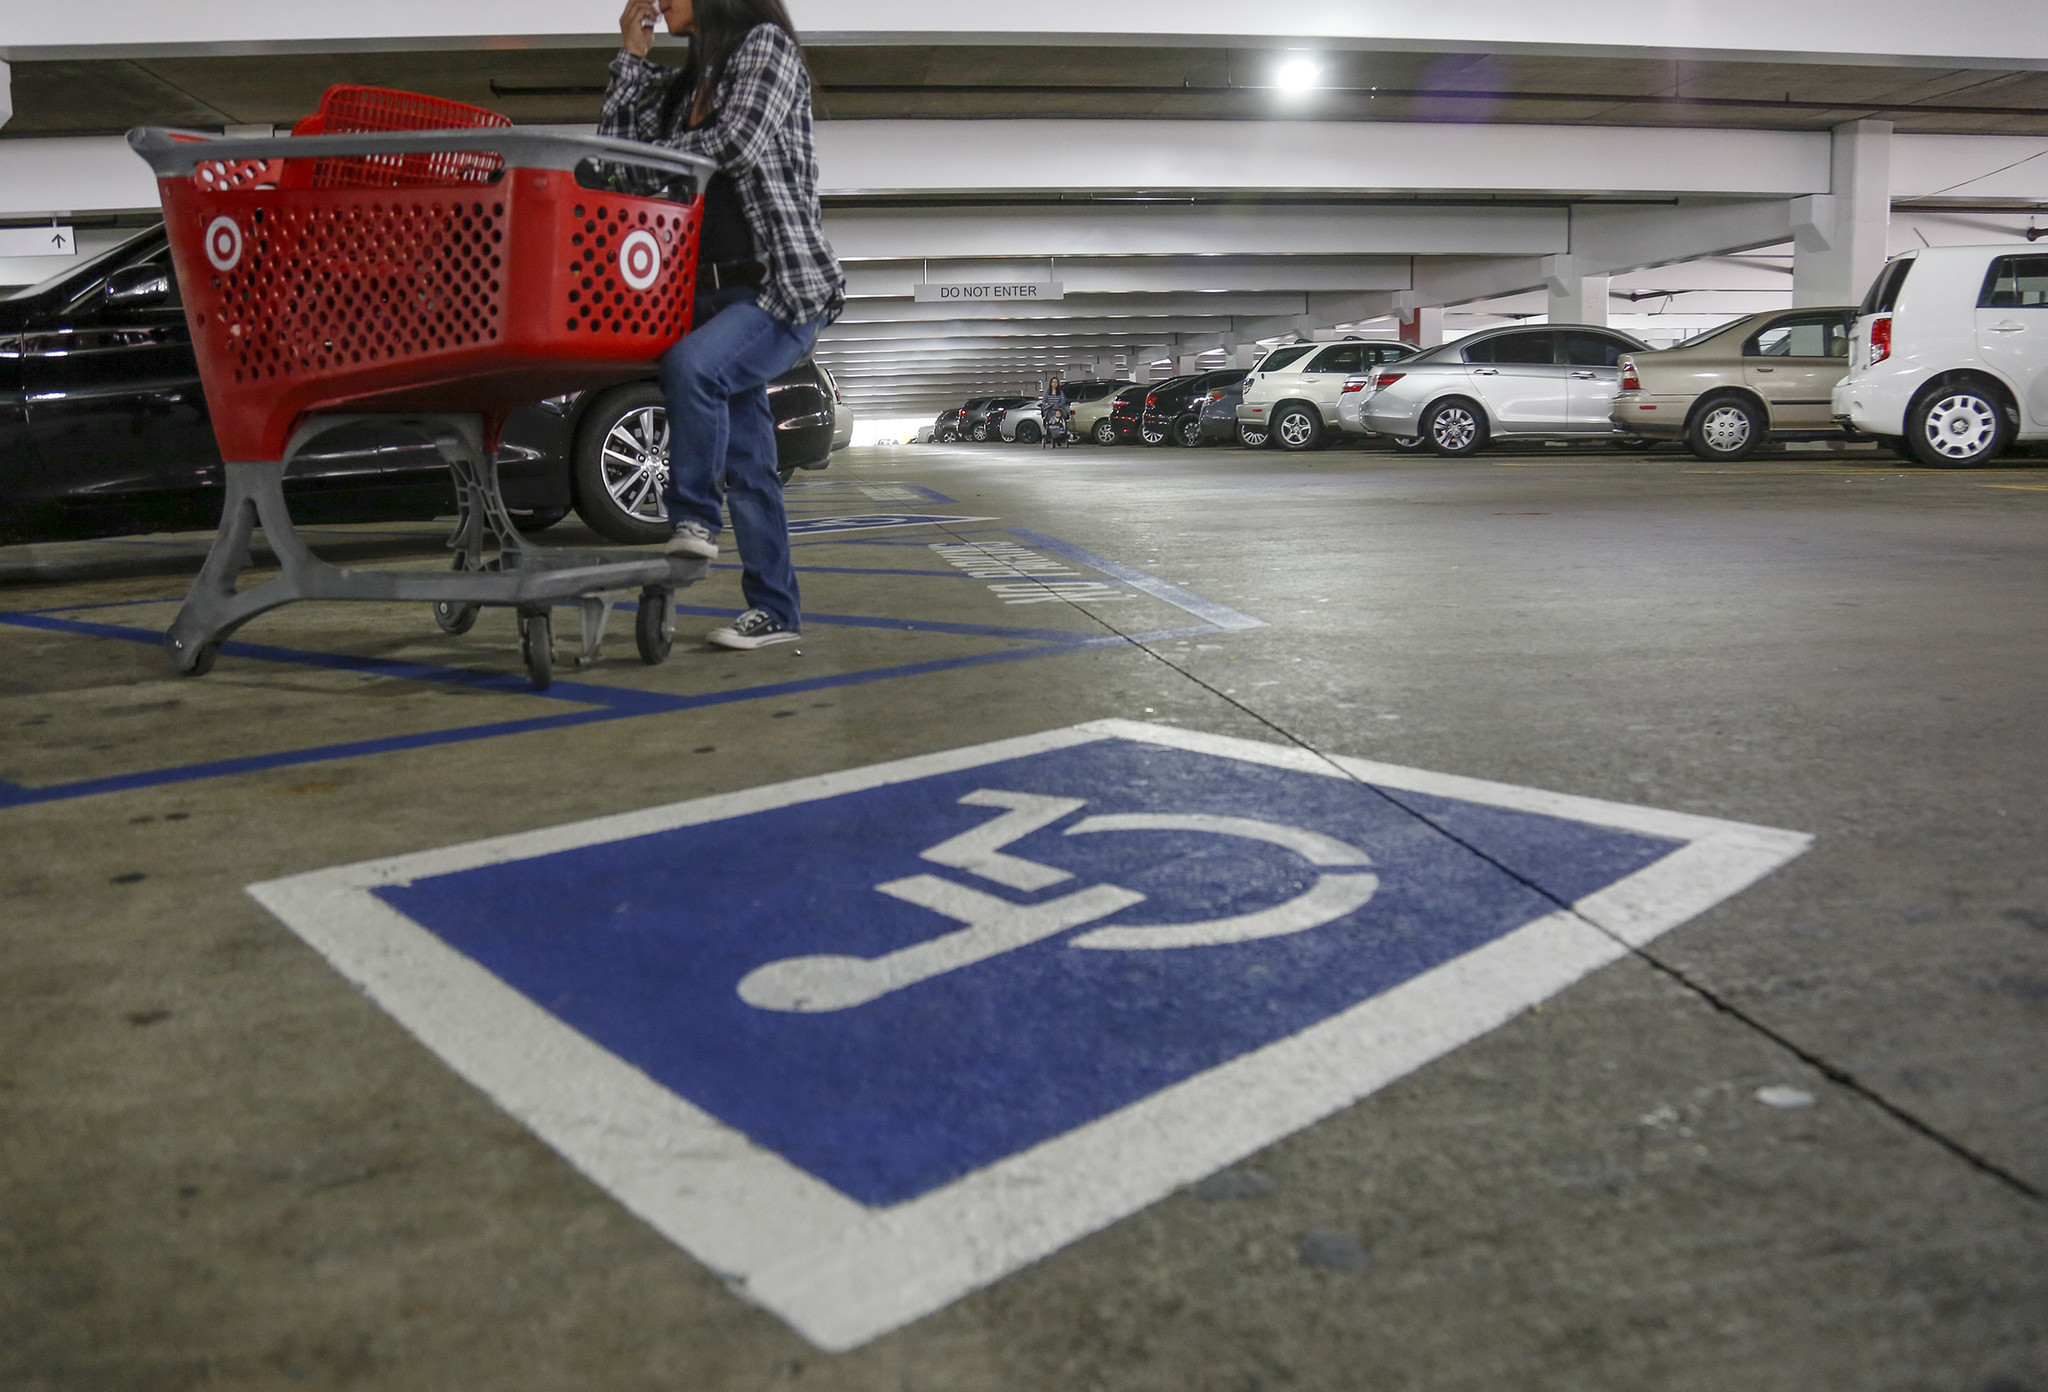 Rules For Disabled Parking Placards In California About To